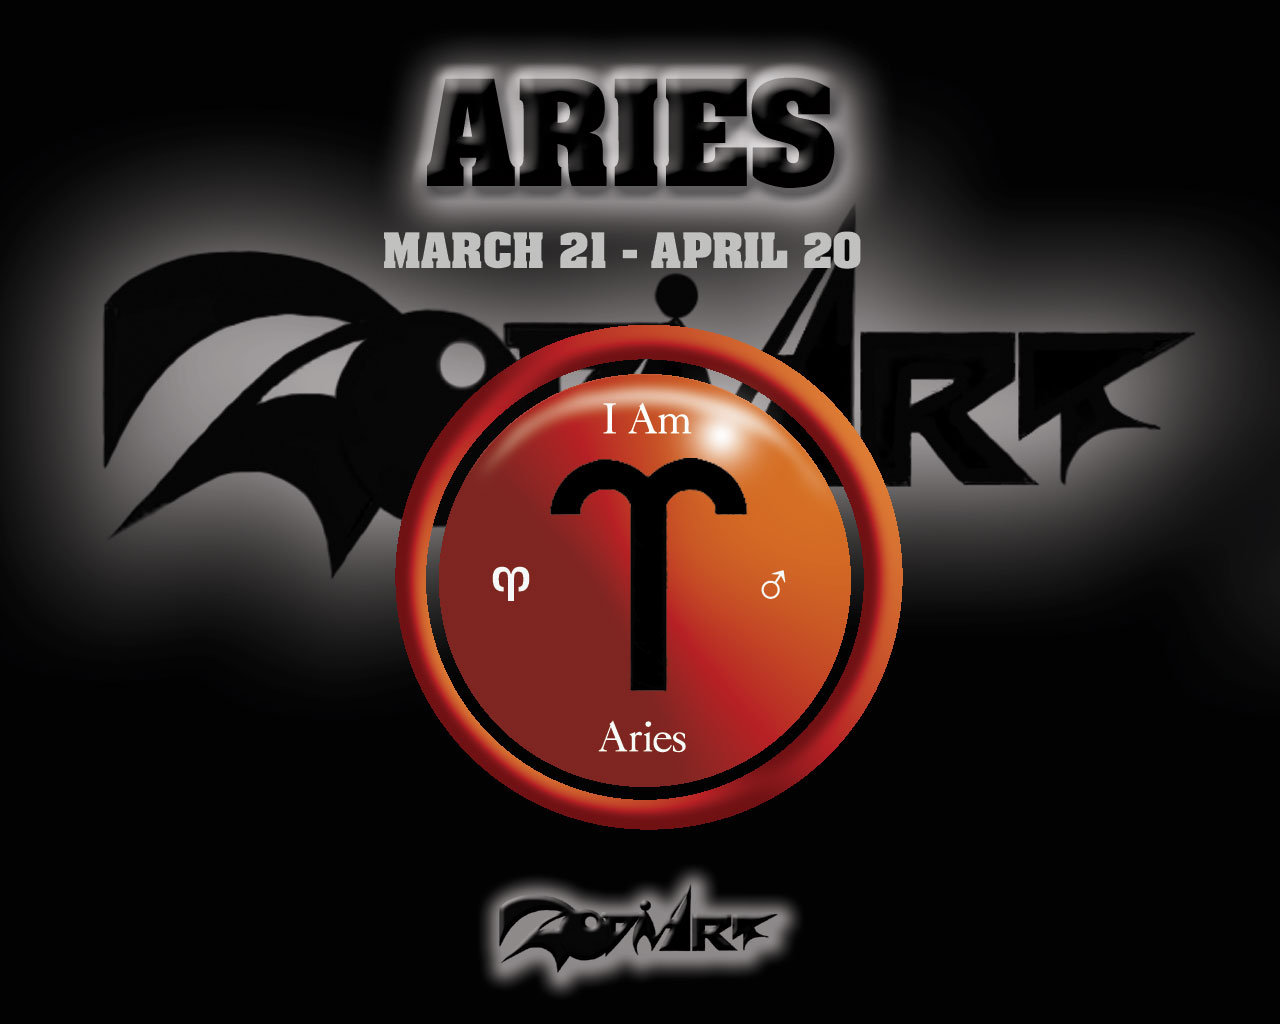 aries wallpapers free download 12561 hd wa 24 Jun 2013 1050 96k 1280x1024